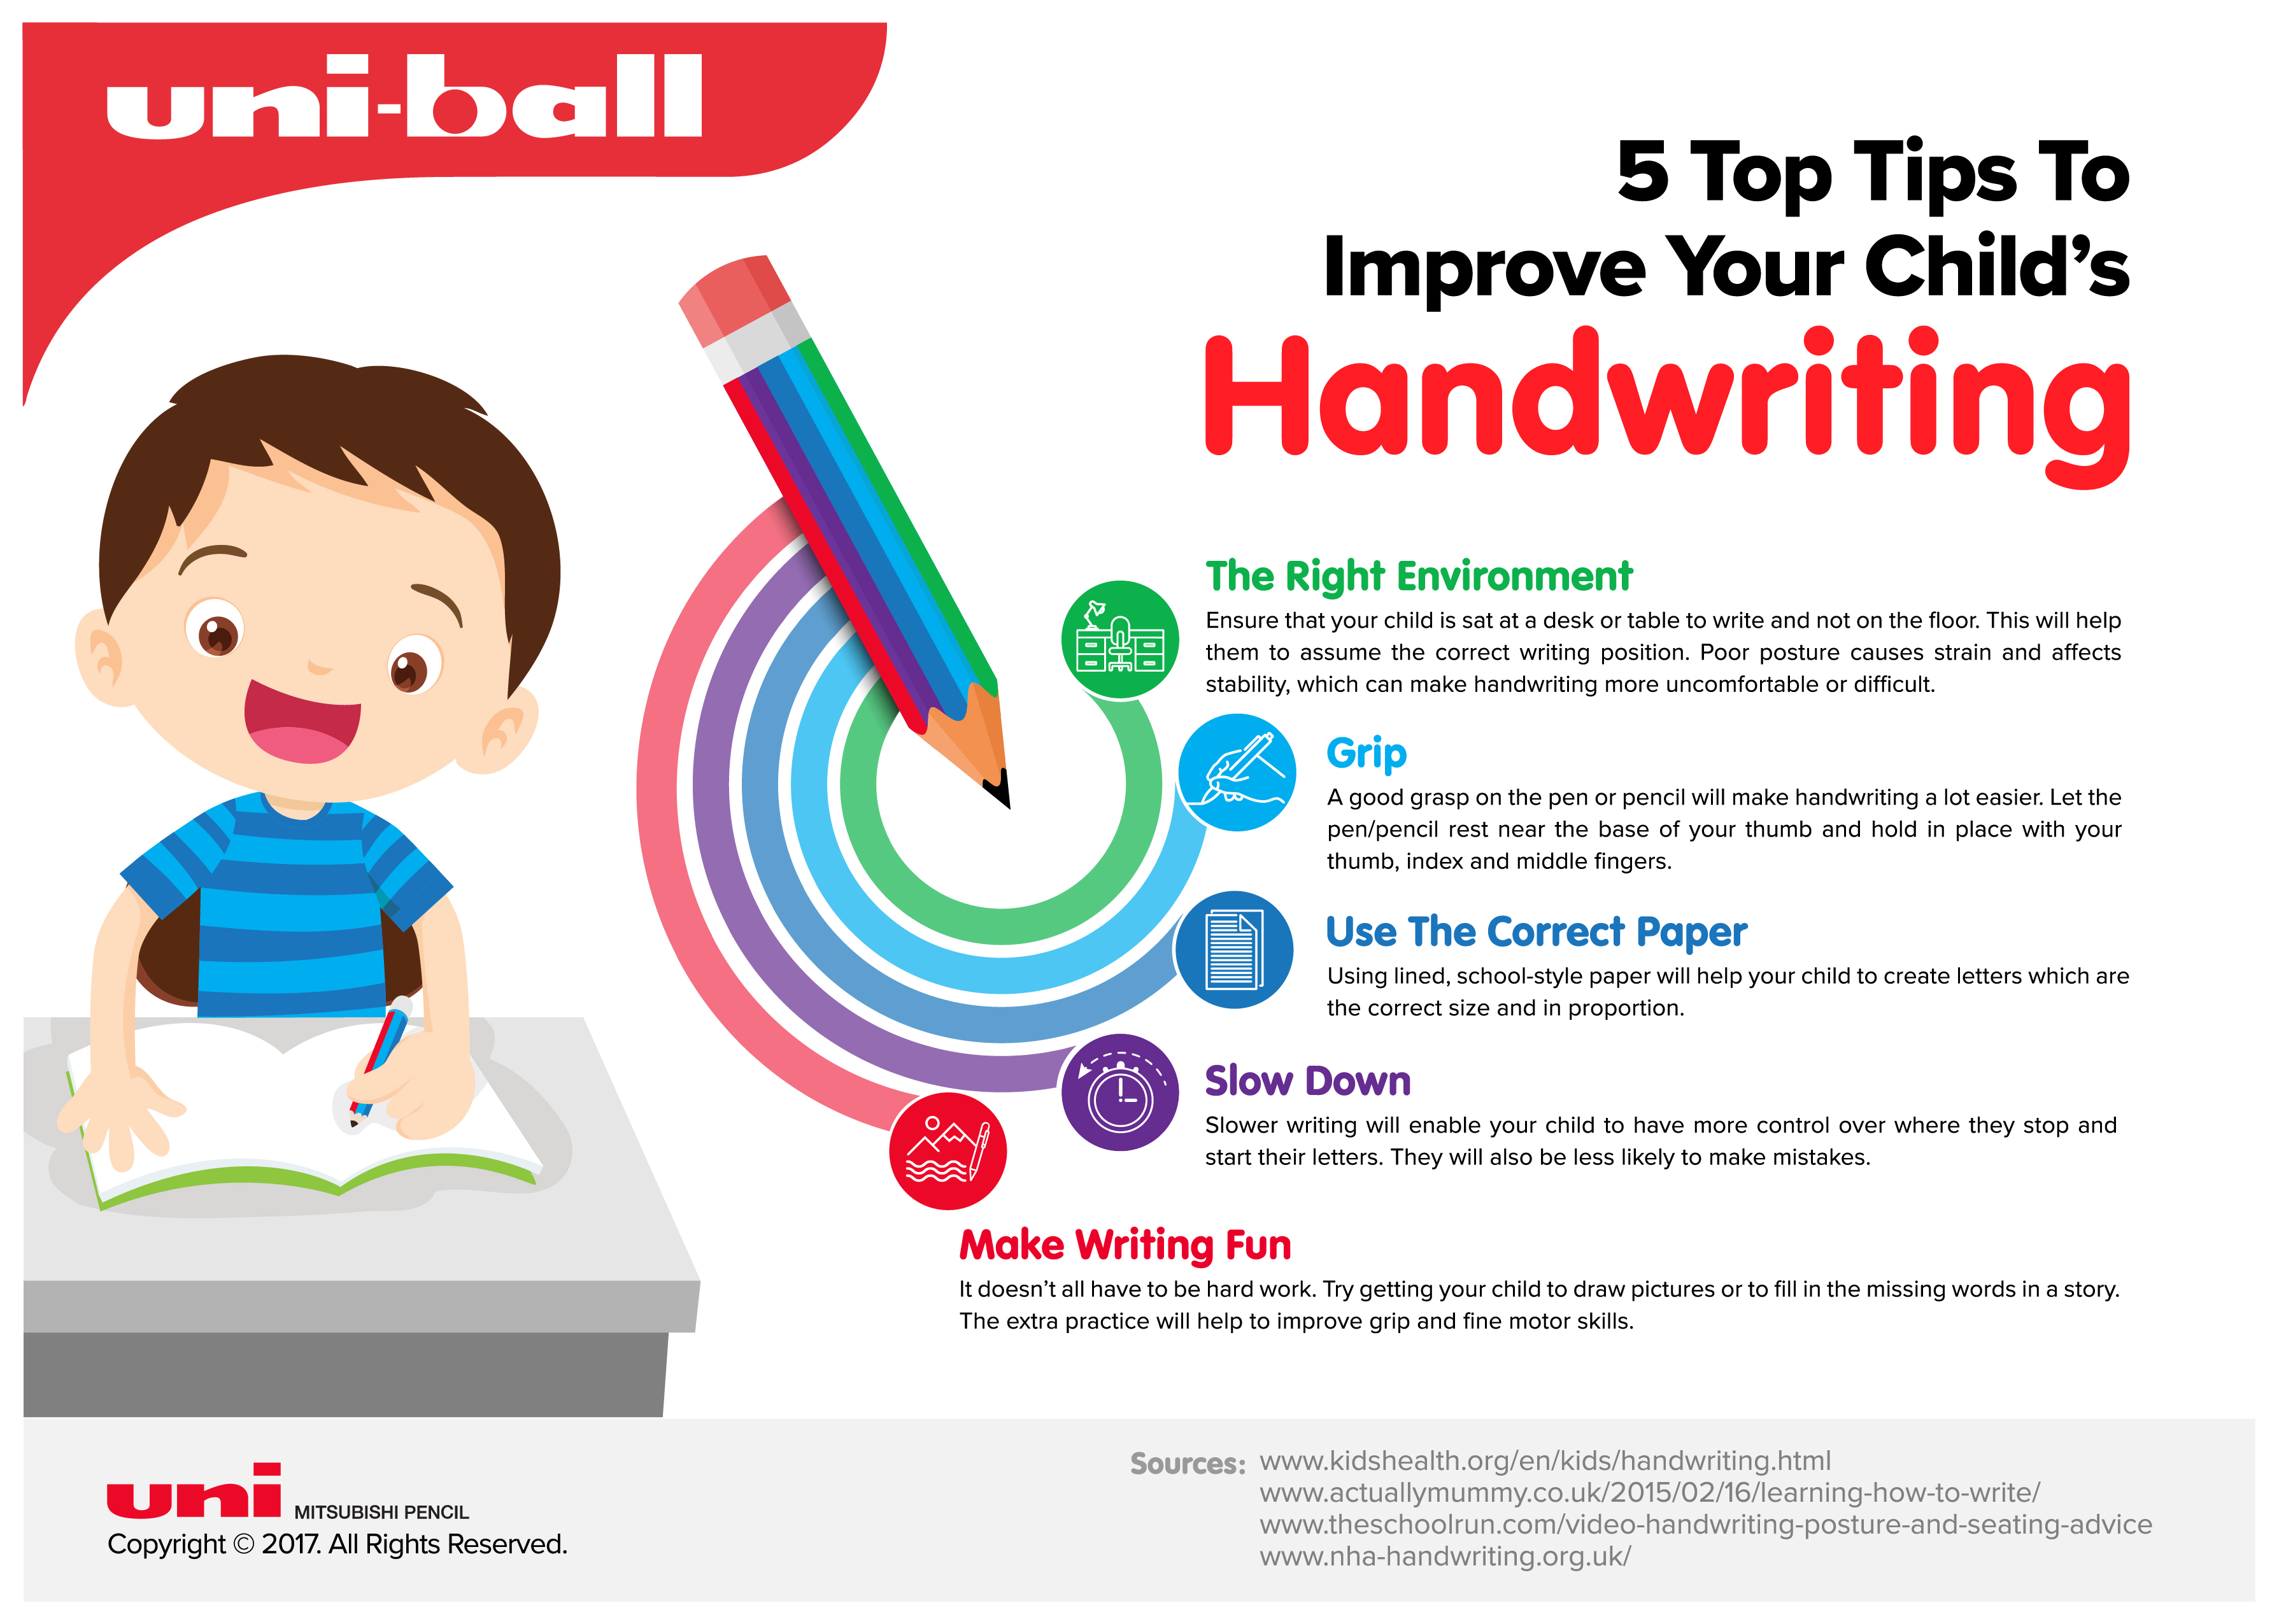 Top Tips To Improve Your Child's Handwriting